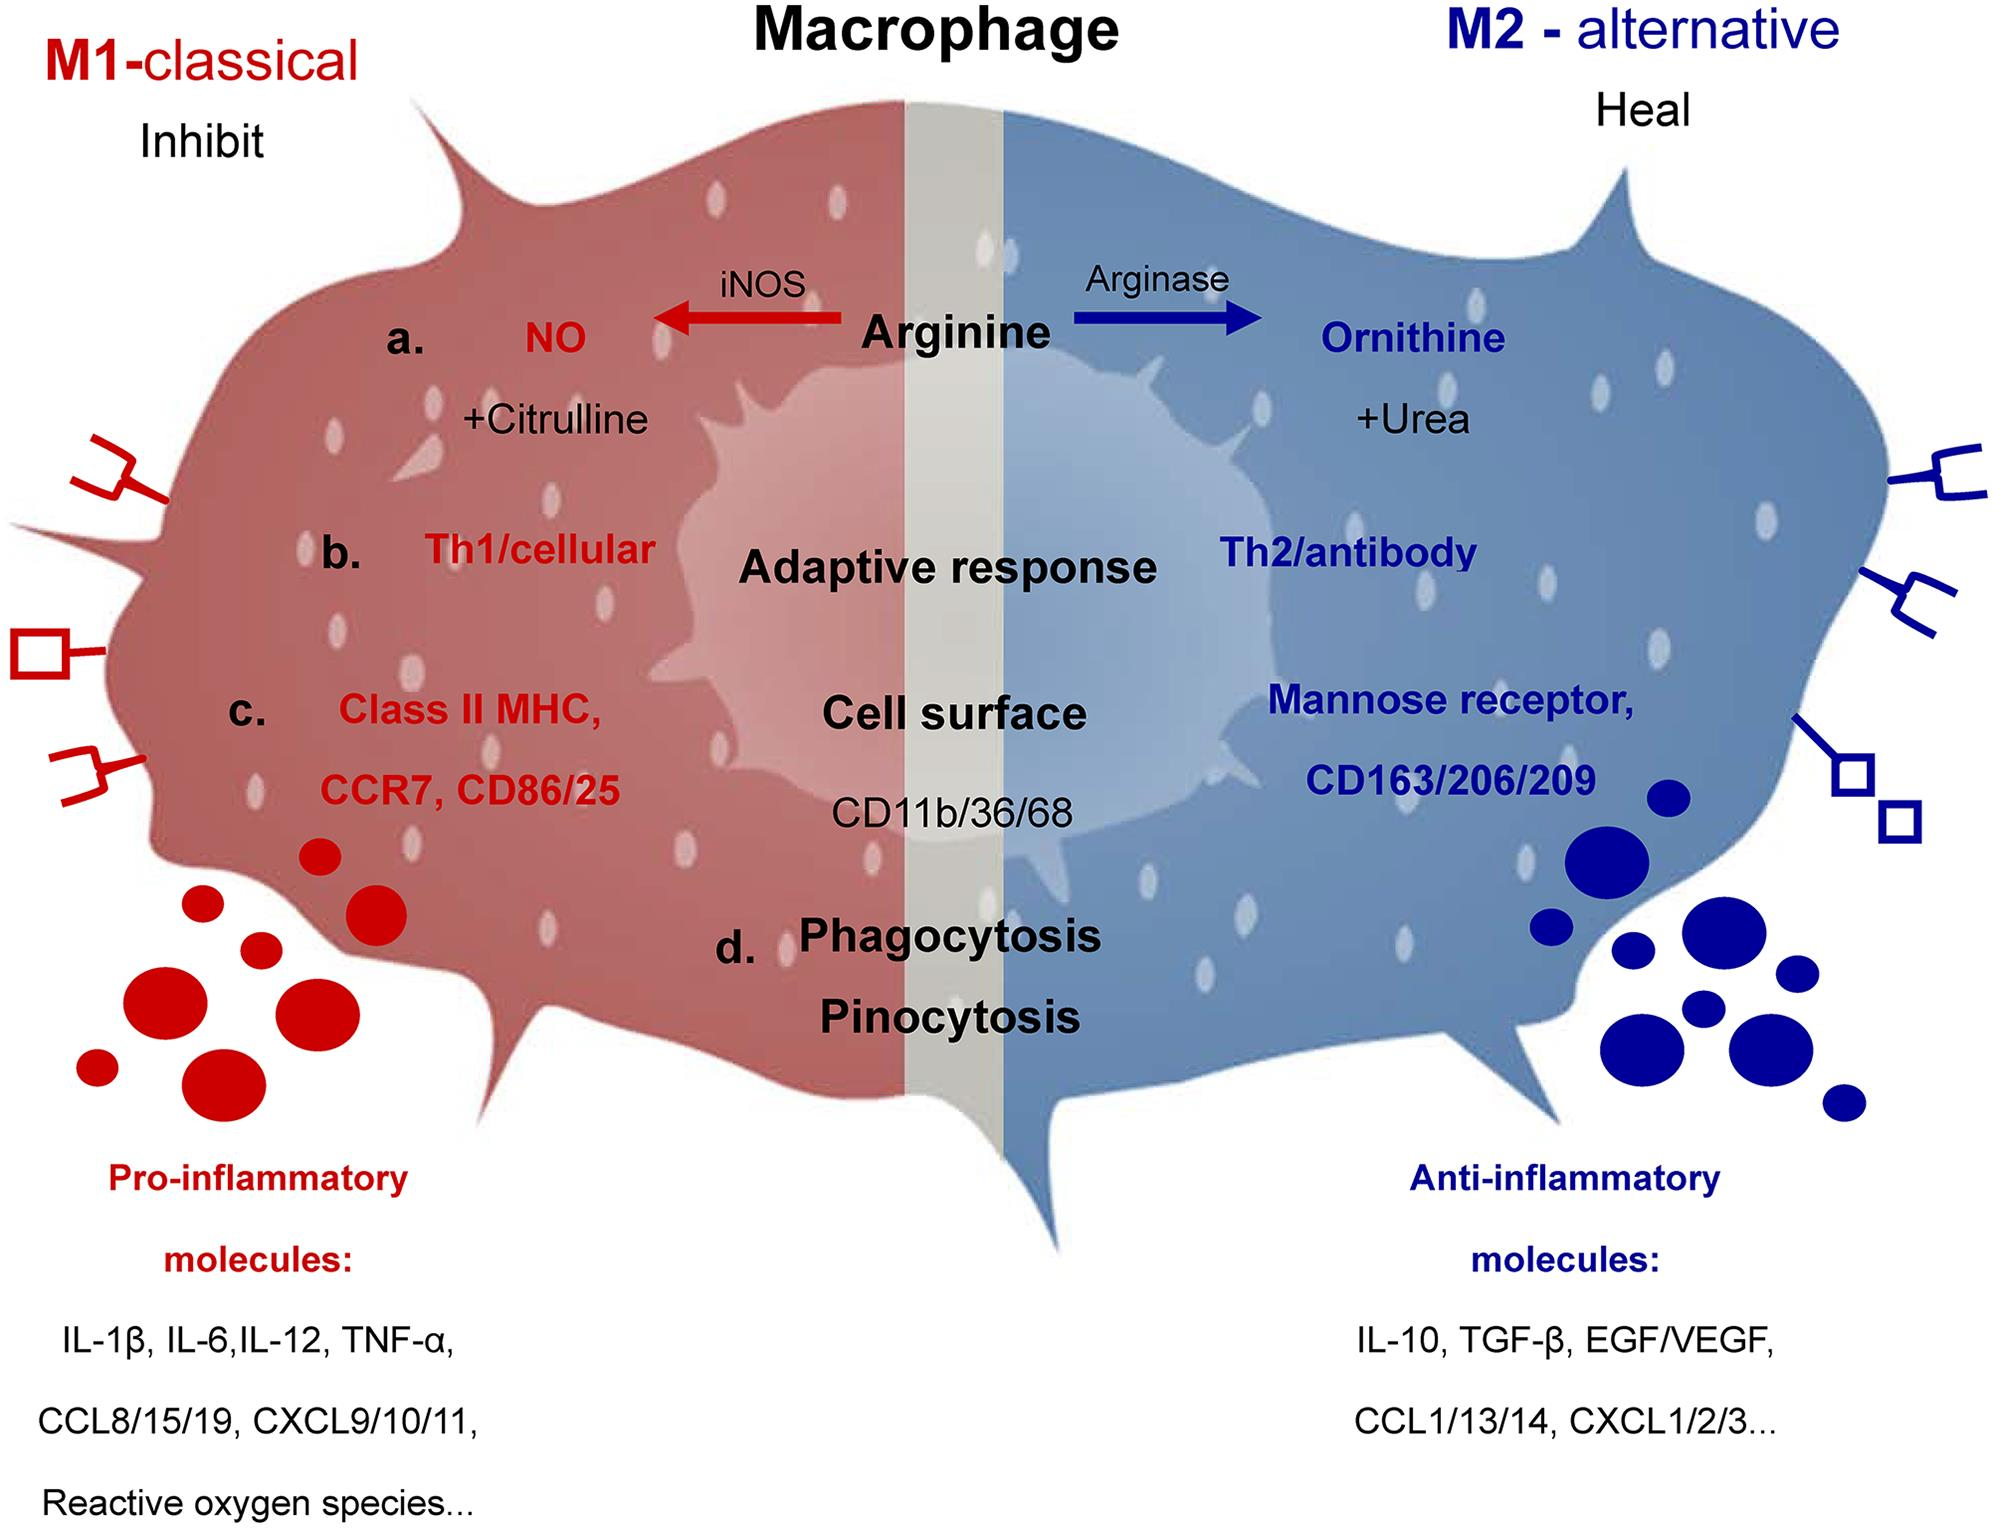 Characteristic products and functions of M1 and M2 macrophages. Macrophages can metabolize arginine with the inducible nitric oxide synthase enzyme into nitric oxide and citrulline or with arginase into ornithine and urea which is the biochemical basis of the M1 or M2 macrophage responses, respectively